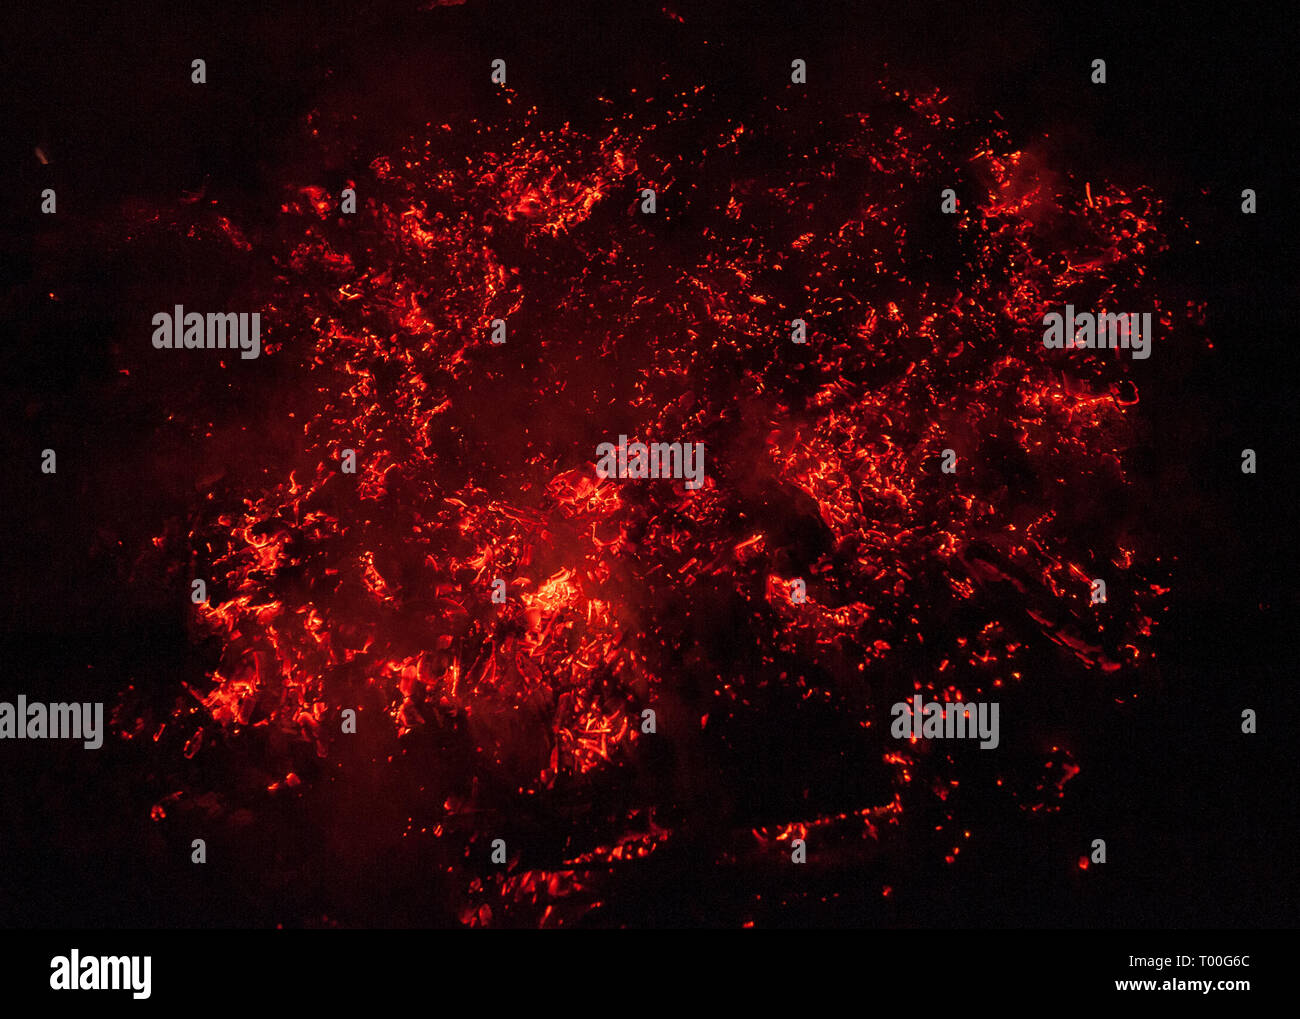 Fire and Heat! - Stock Image